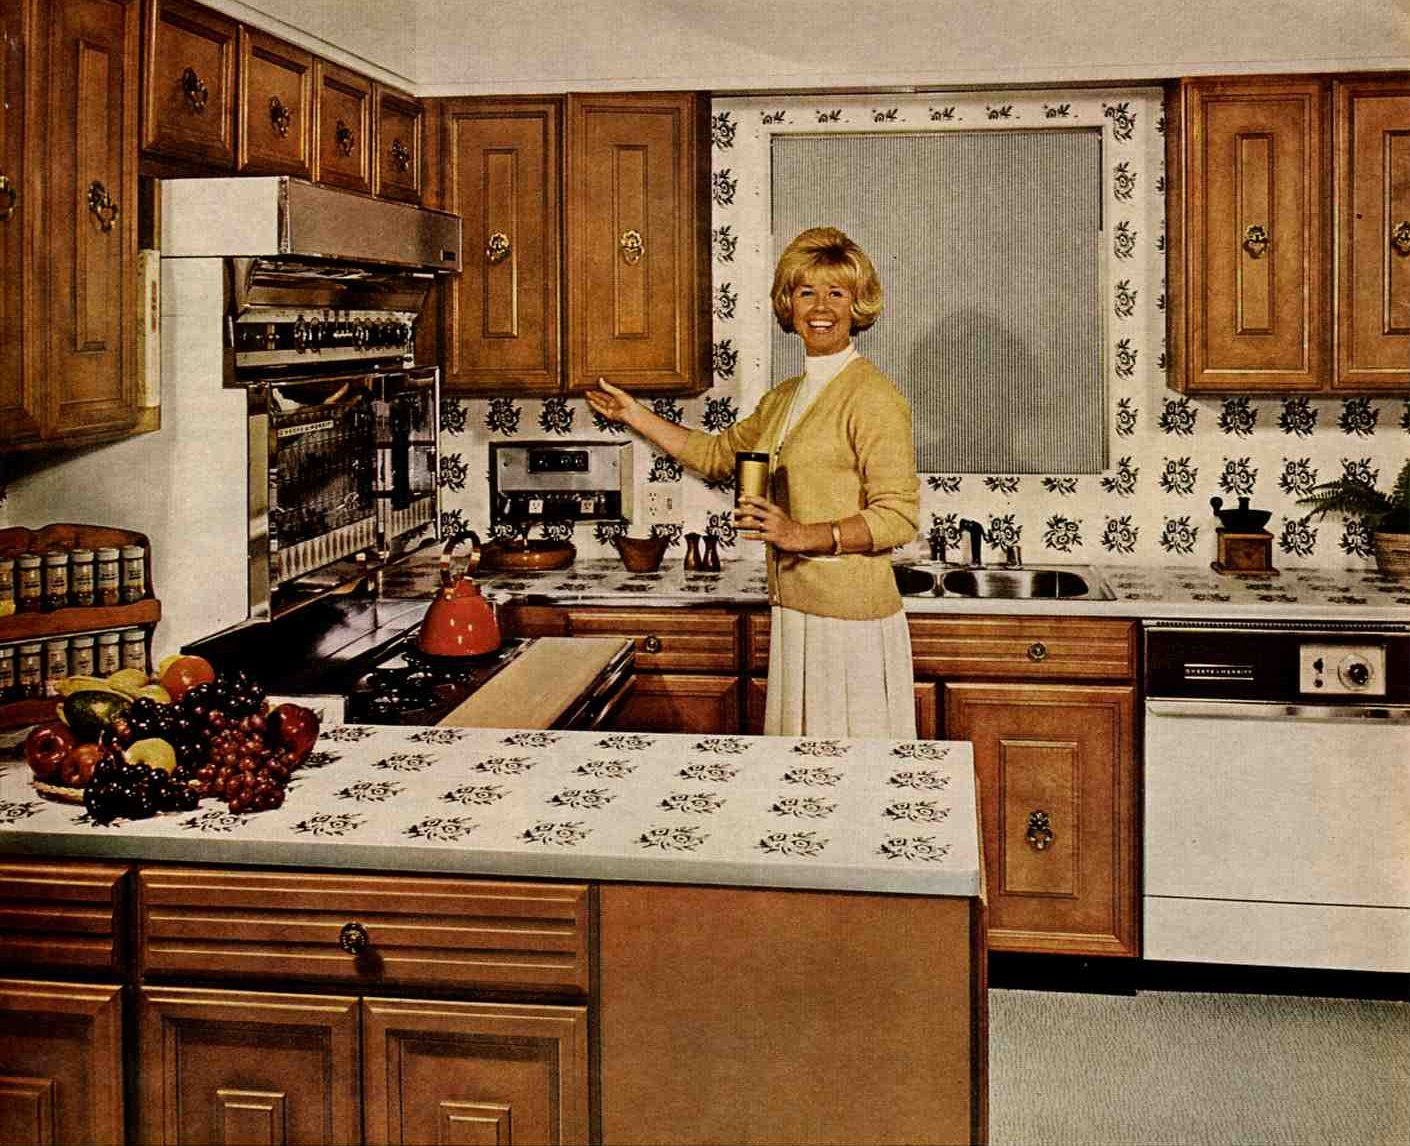 1960s Kitchens doris day in her 1966 malibu kitchen | 1960s kitchen & dining